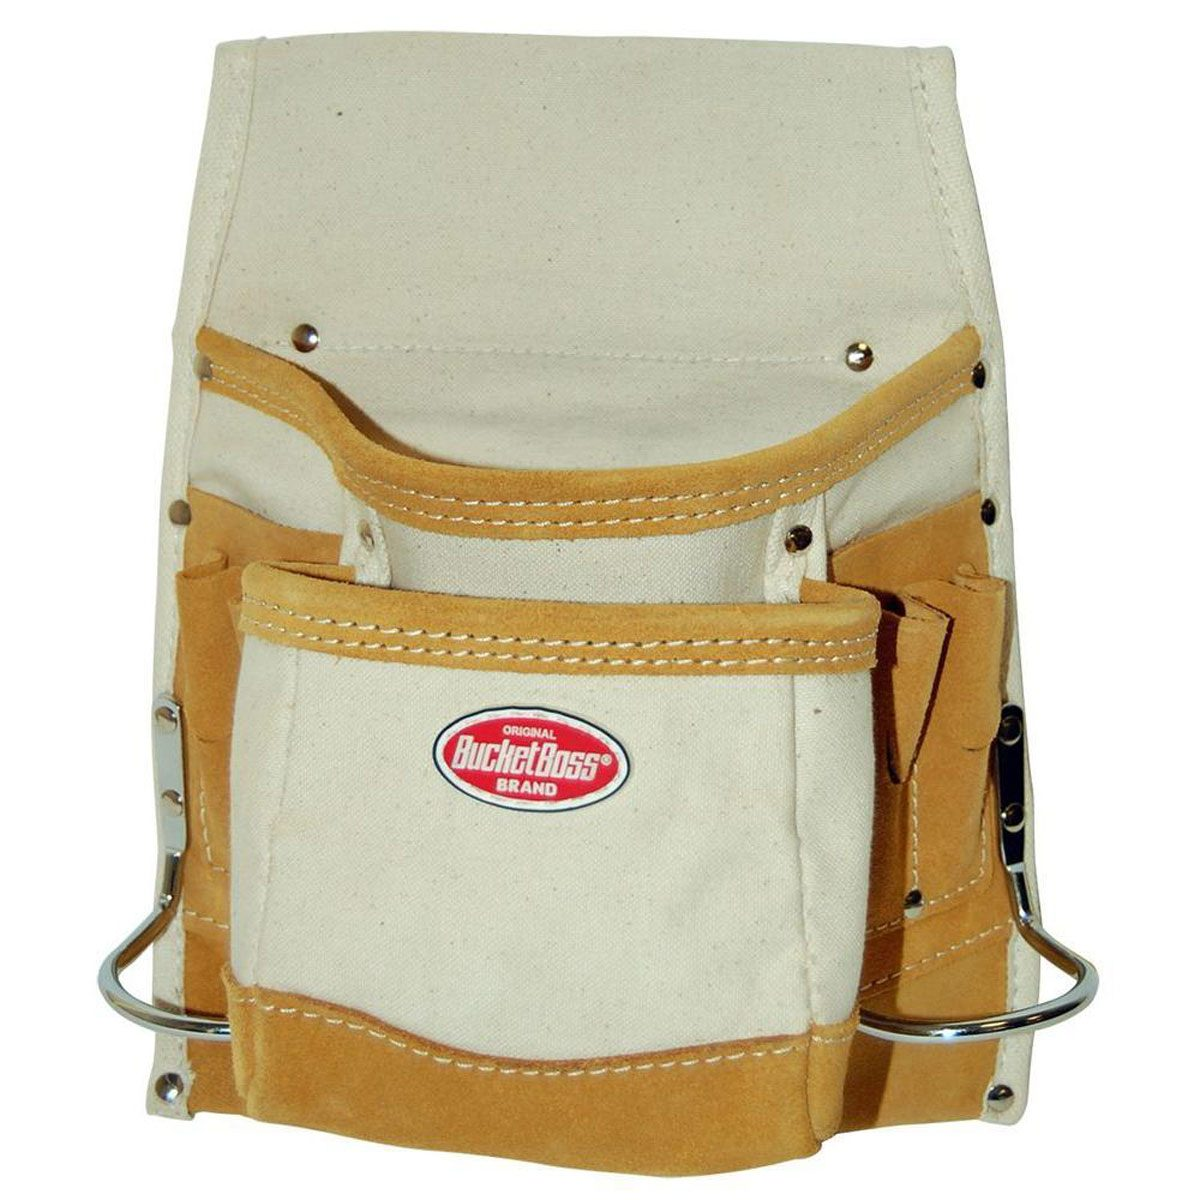 10-in. Canvas 8-pocket Nail and Tool Bag